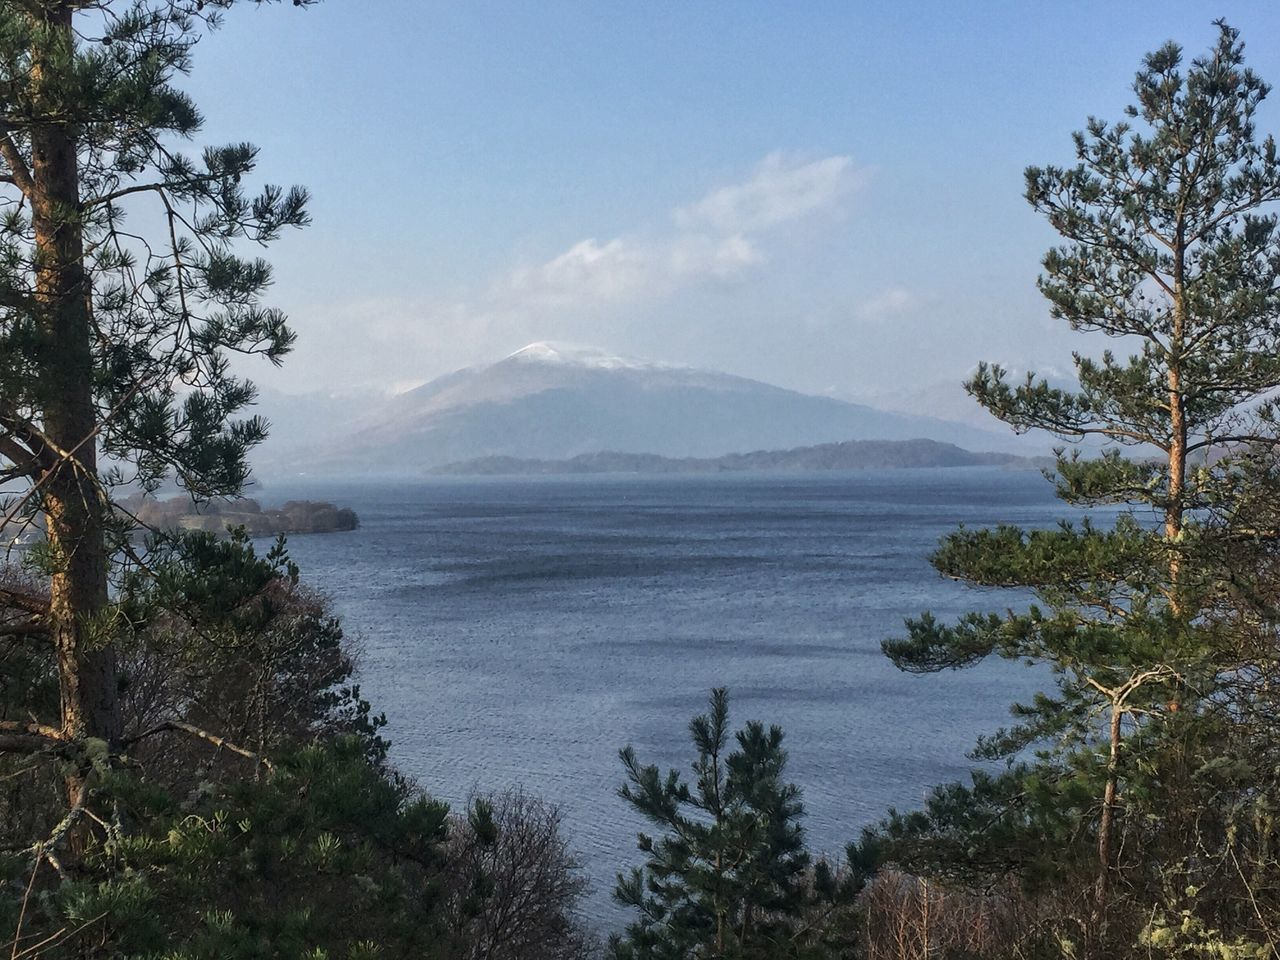 Landscape Outdoors Elevated View Mountain Sky Beautiful Scenics Water Growth No People Day Foreground Lovely View Nature Tree Beauty In Nature Countryside Tranquil Scene Scotland Beautifulworld Naturelovers LochLomond Scenery Shots Mountain Range